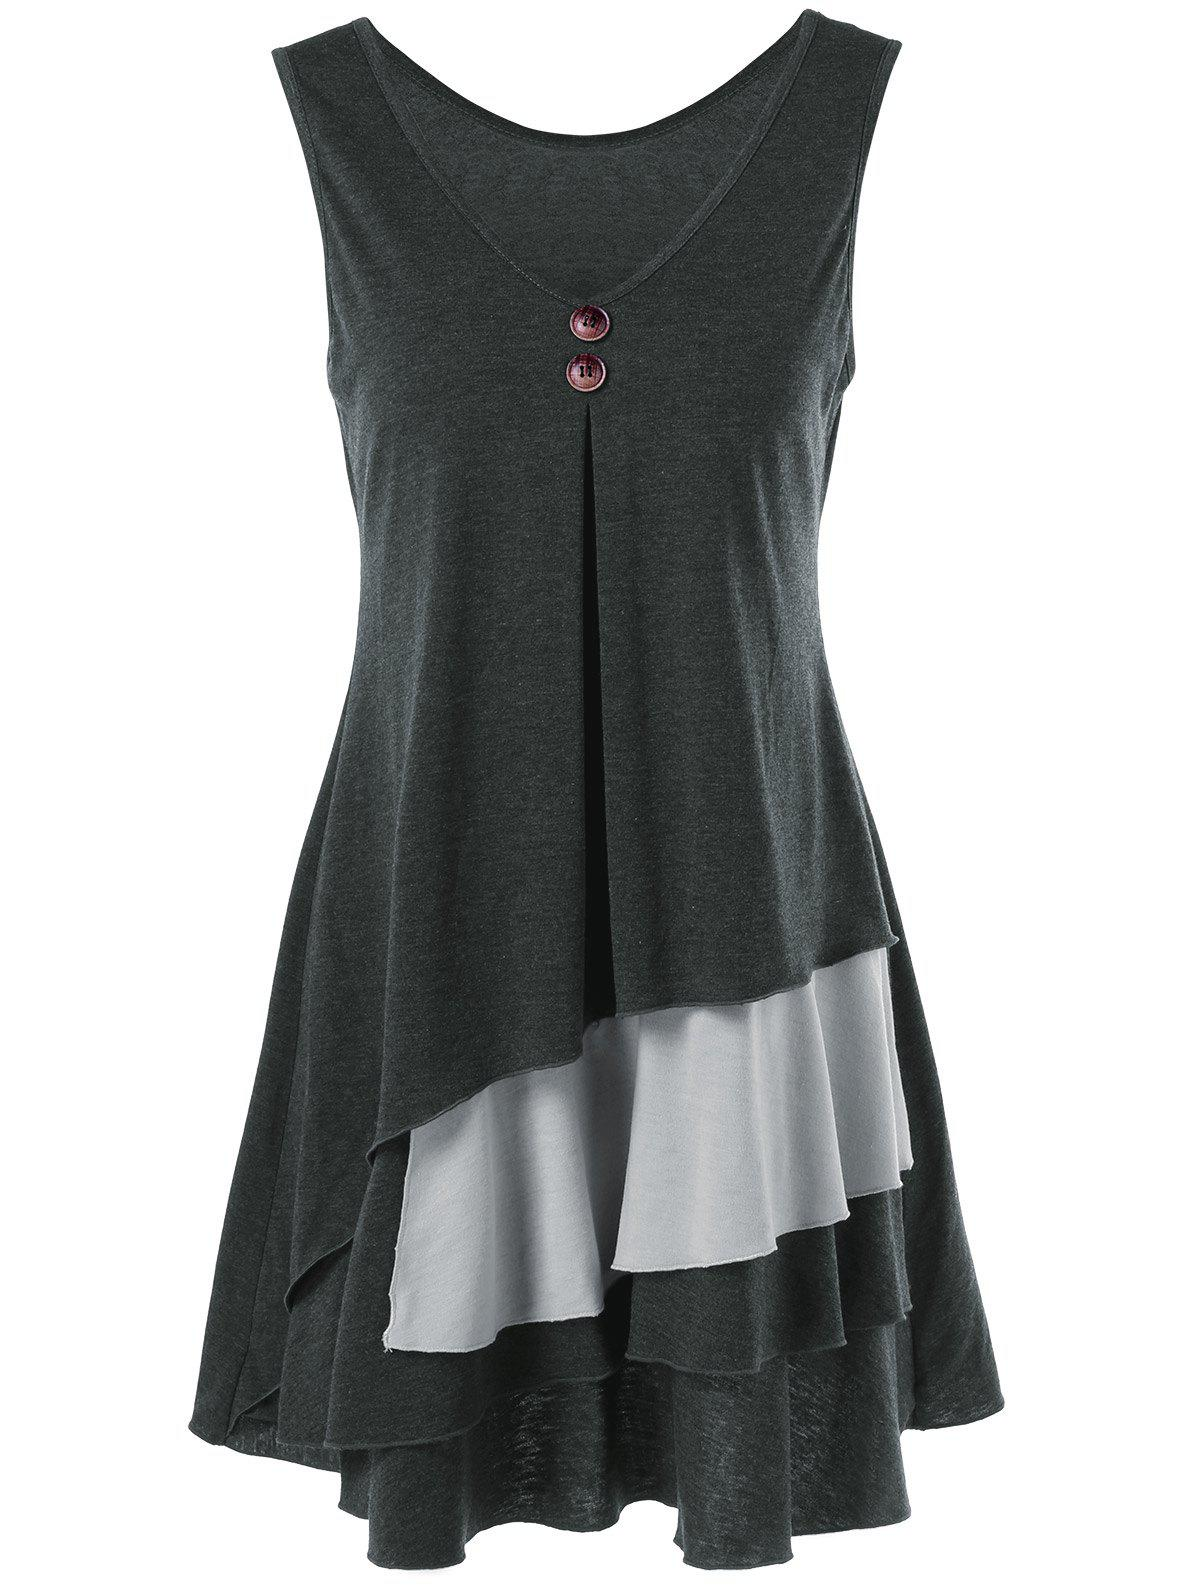 Layered Longline T-Shirt with Button - BLACK/GREY XL